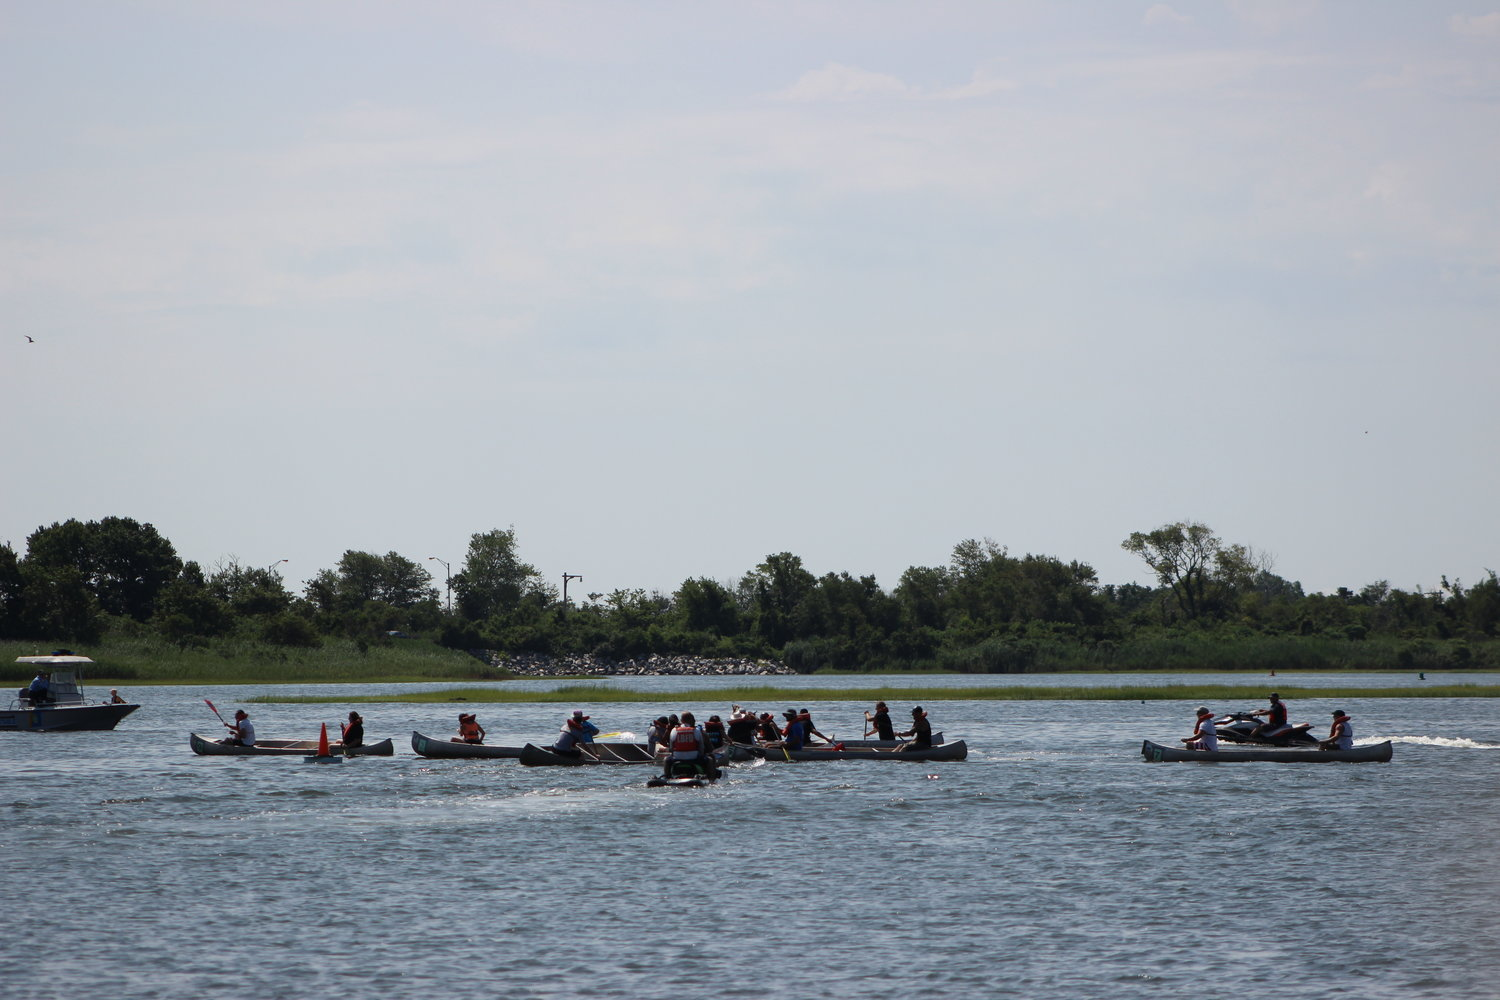 The Great Canoe Races held on Aug. 4 at Cow Meadow Park competitors were neck to neck during one of the races.